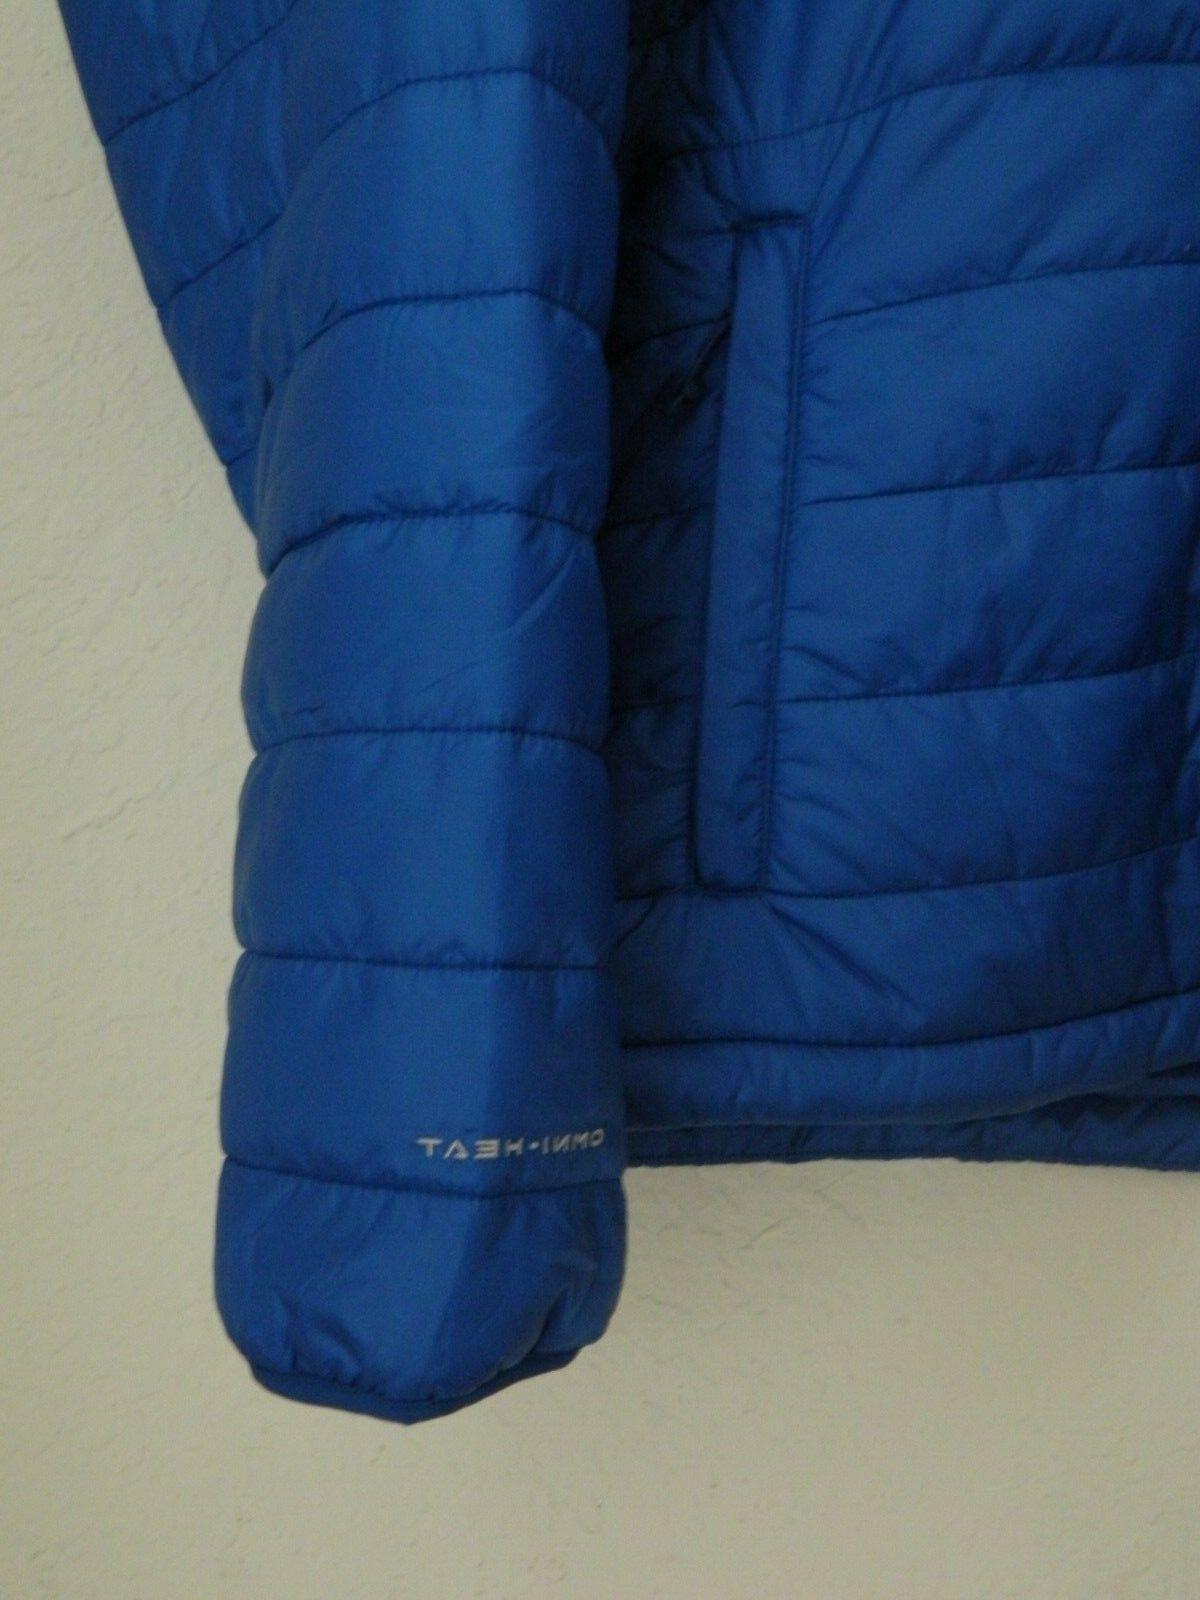 "New Columbia Butte II"" Omni-Heat Insulated Winter Jacket Coat"